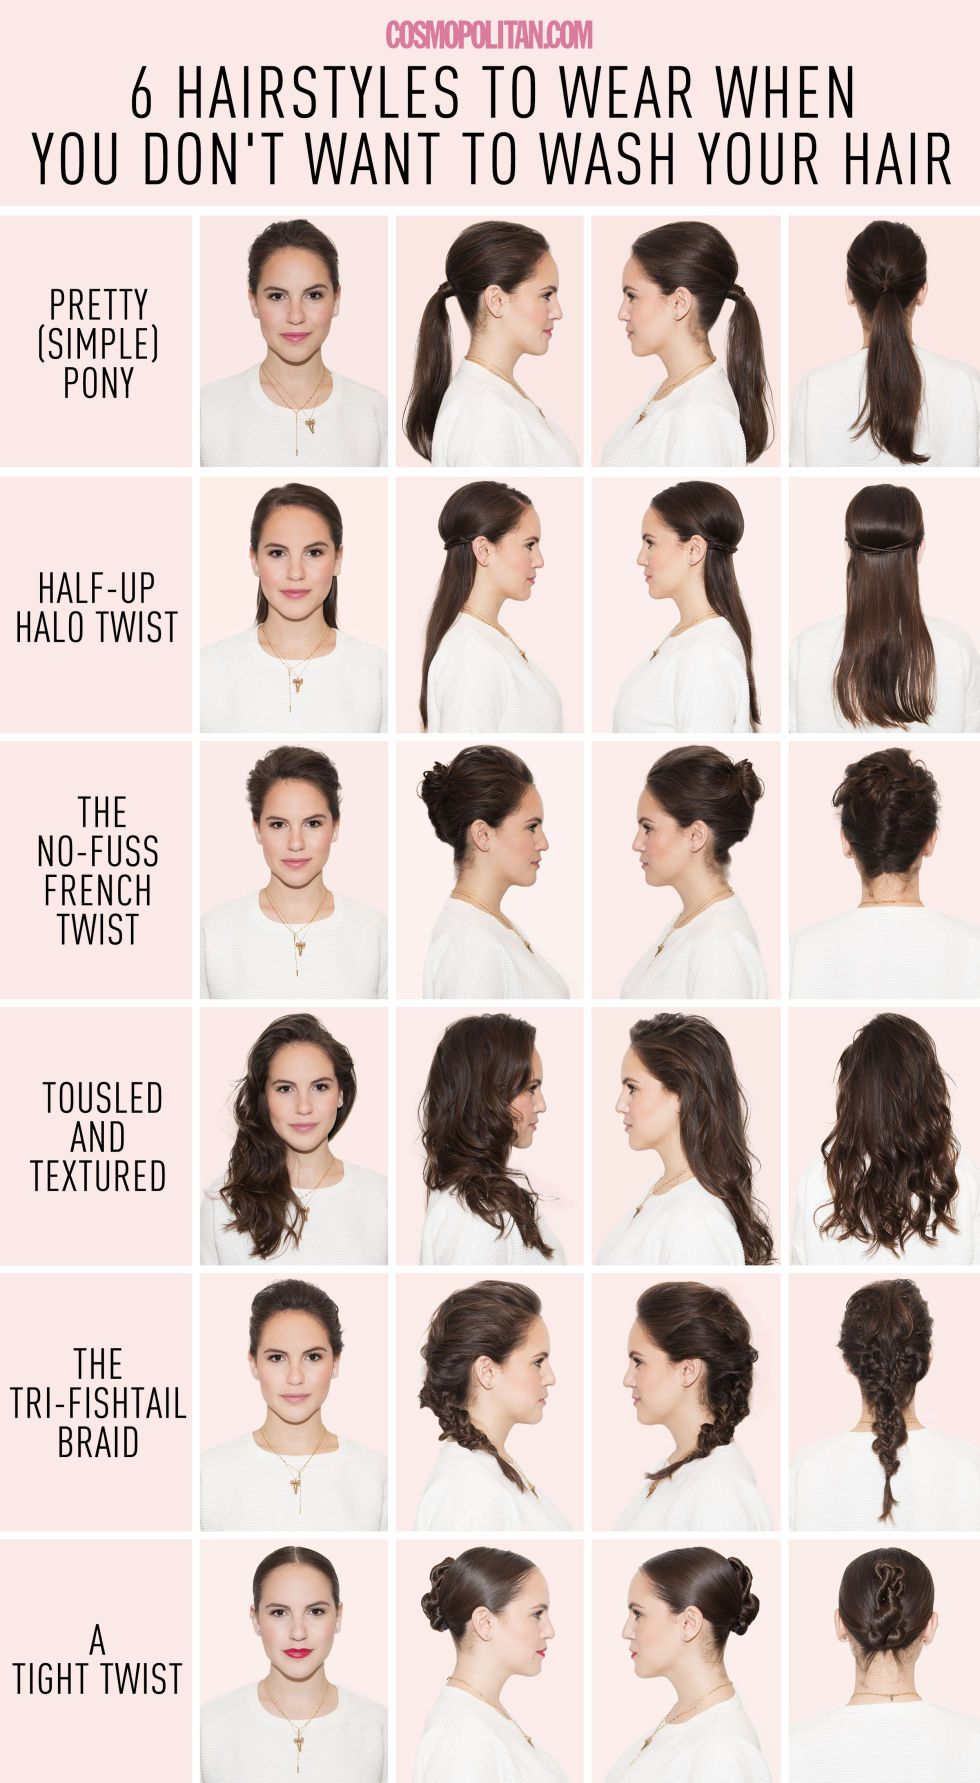 6 hairstyles for when you just can't wash your hair | weight